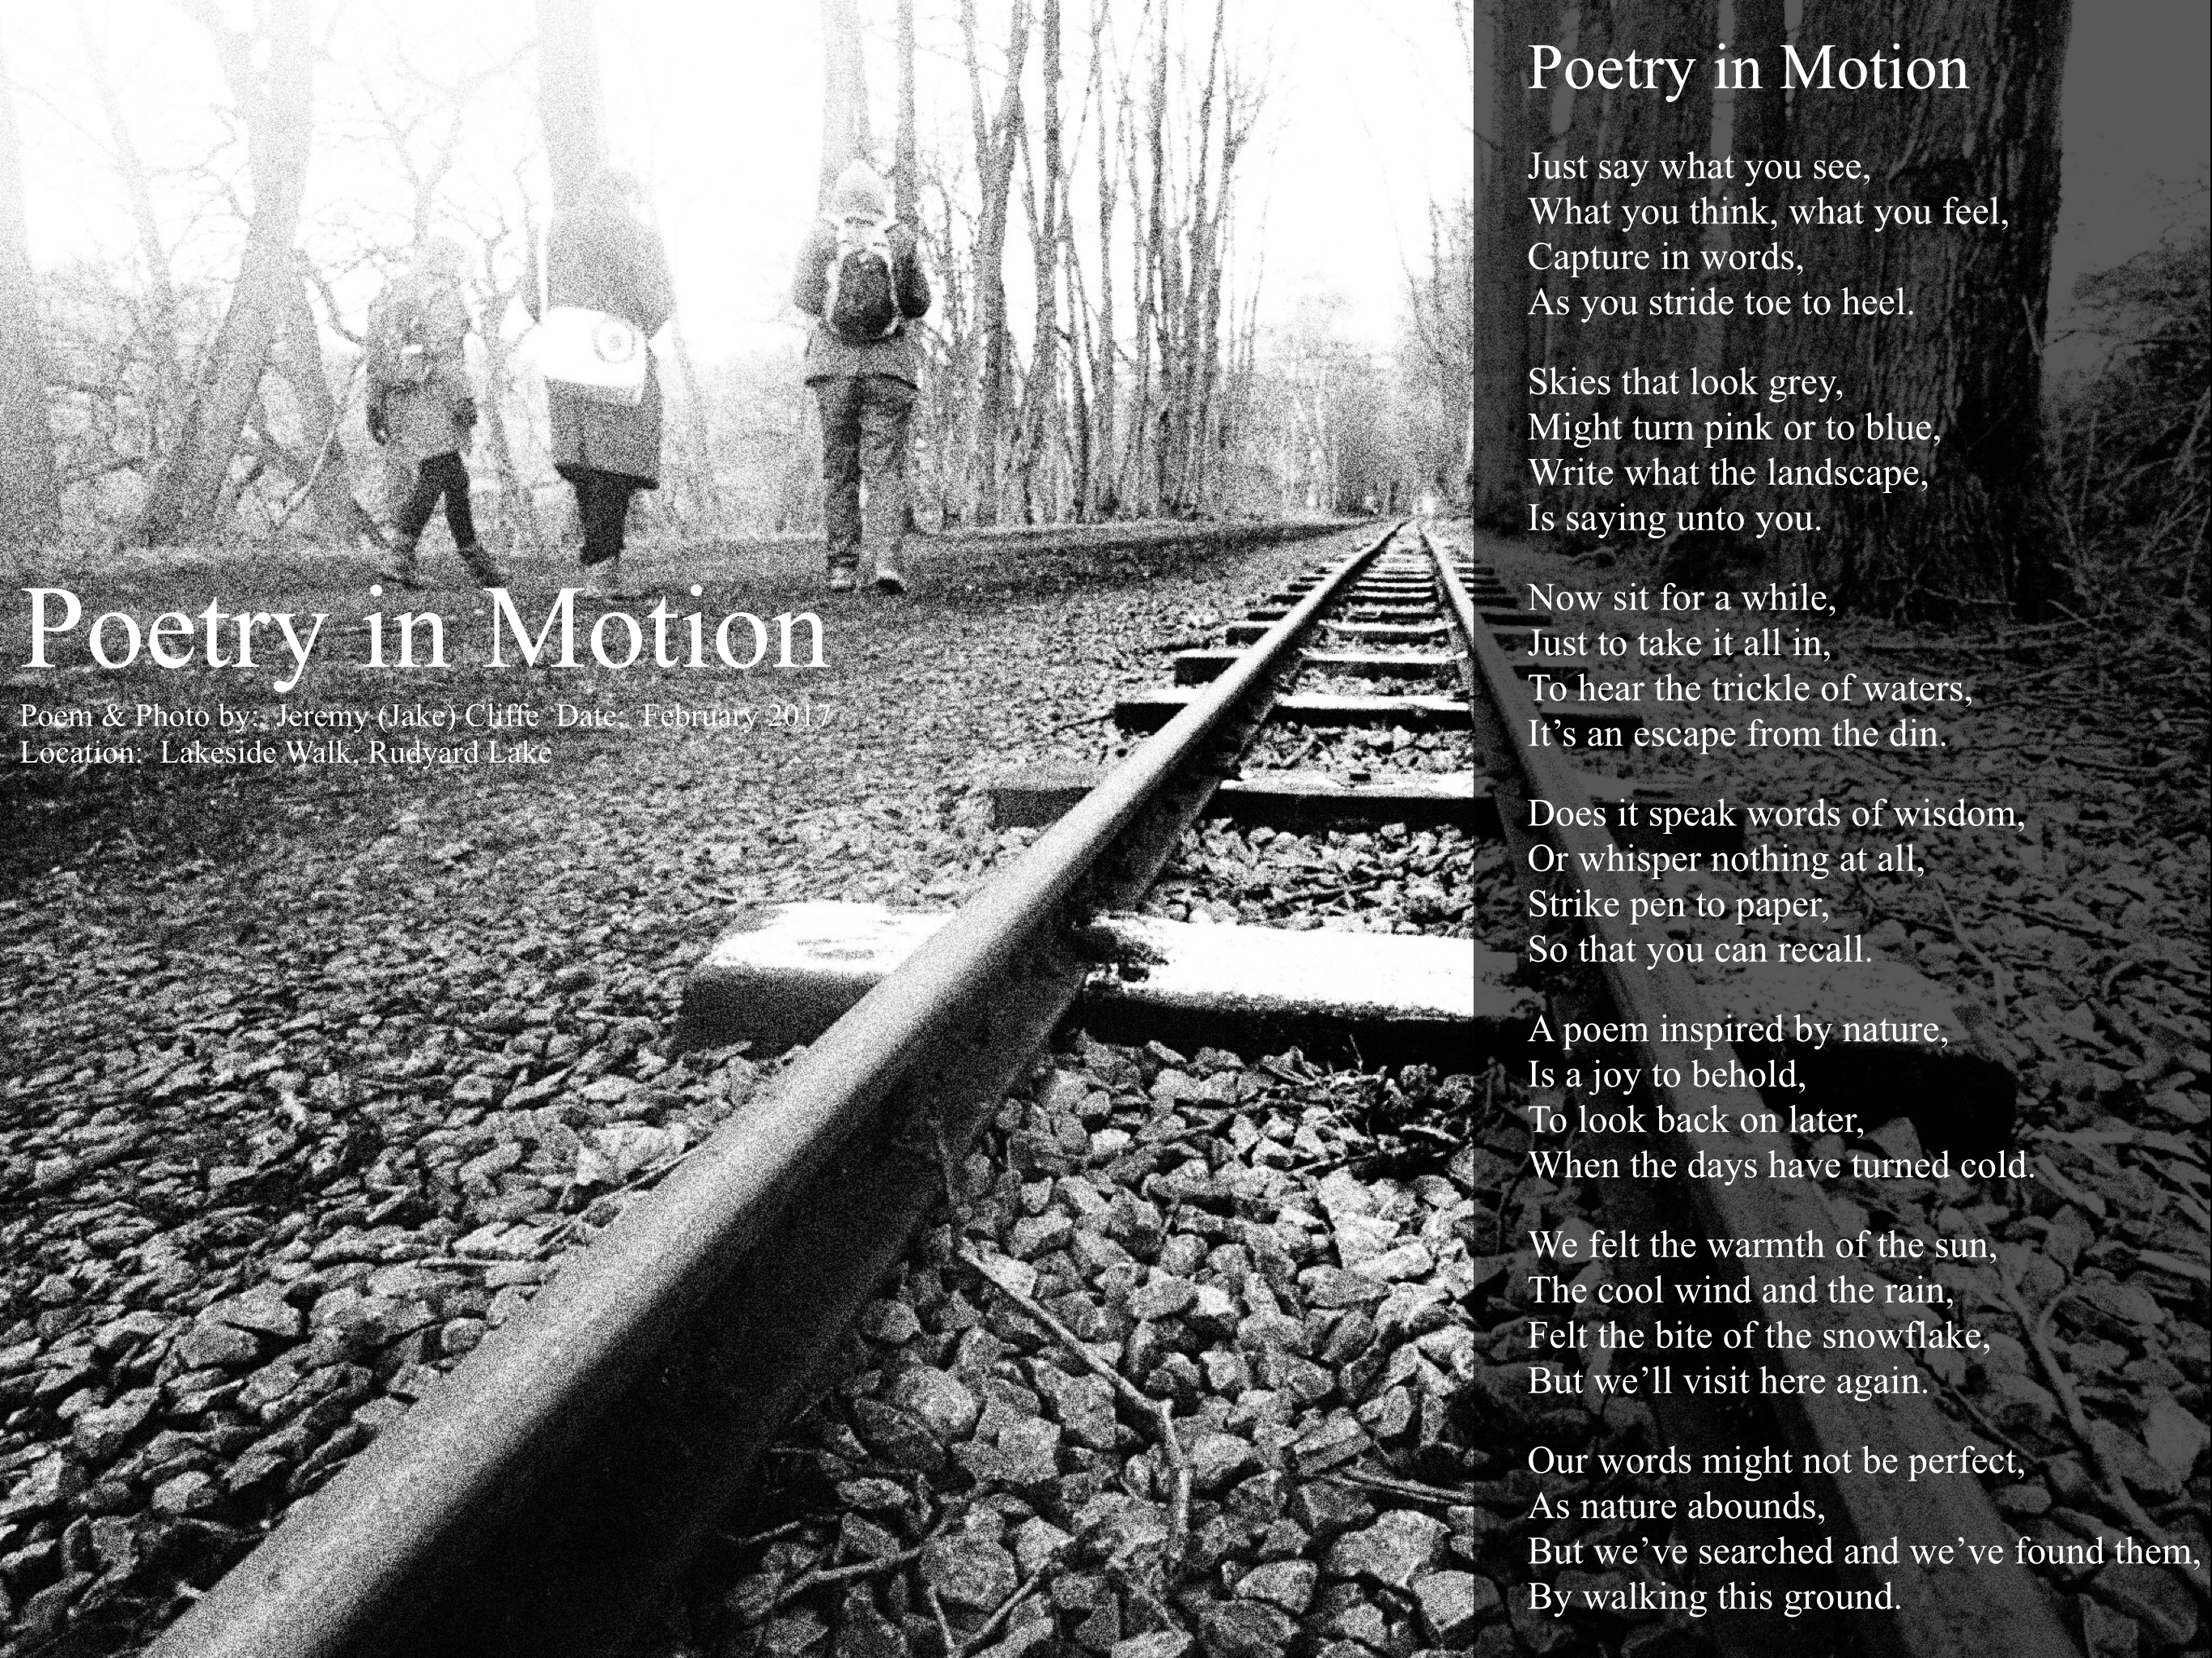 Human-Nature Escapes CIC - Poetry in Motion